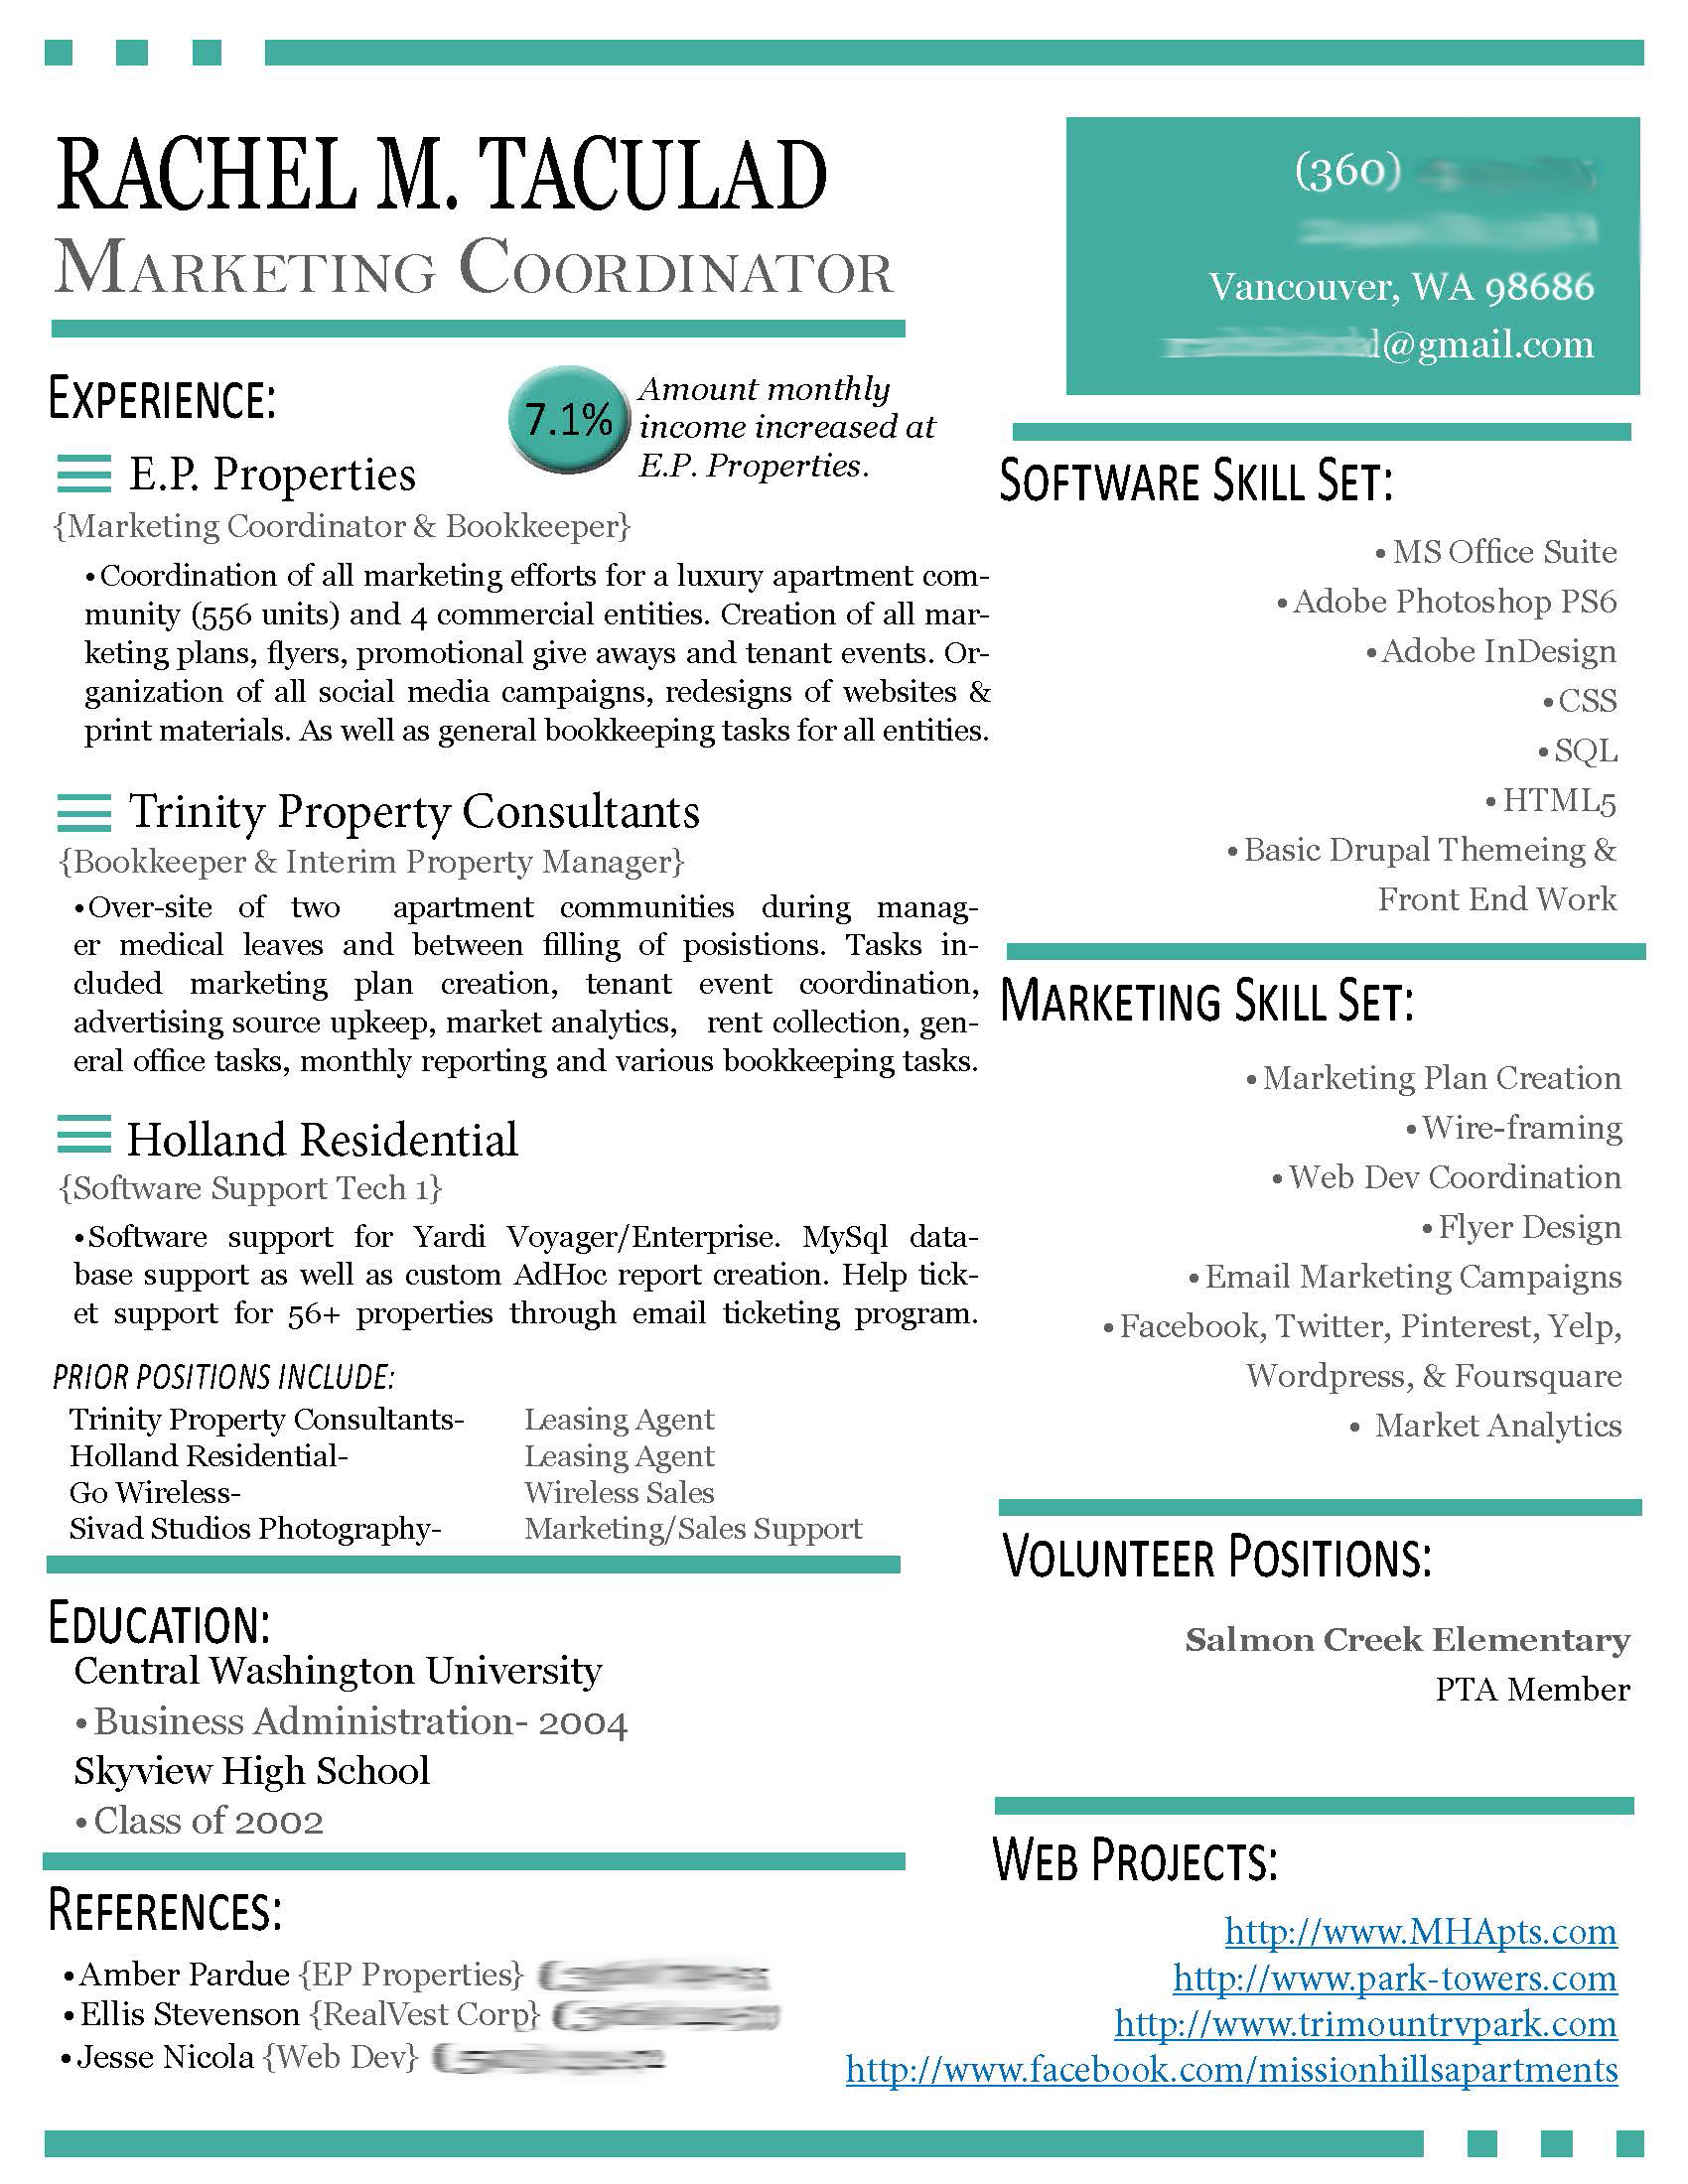 Creative Resumes Modern Résumé Update Left Brain Right Brain